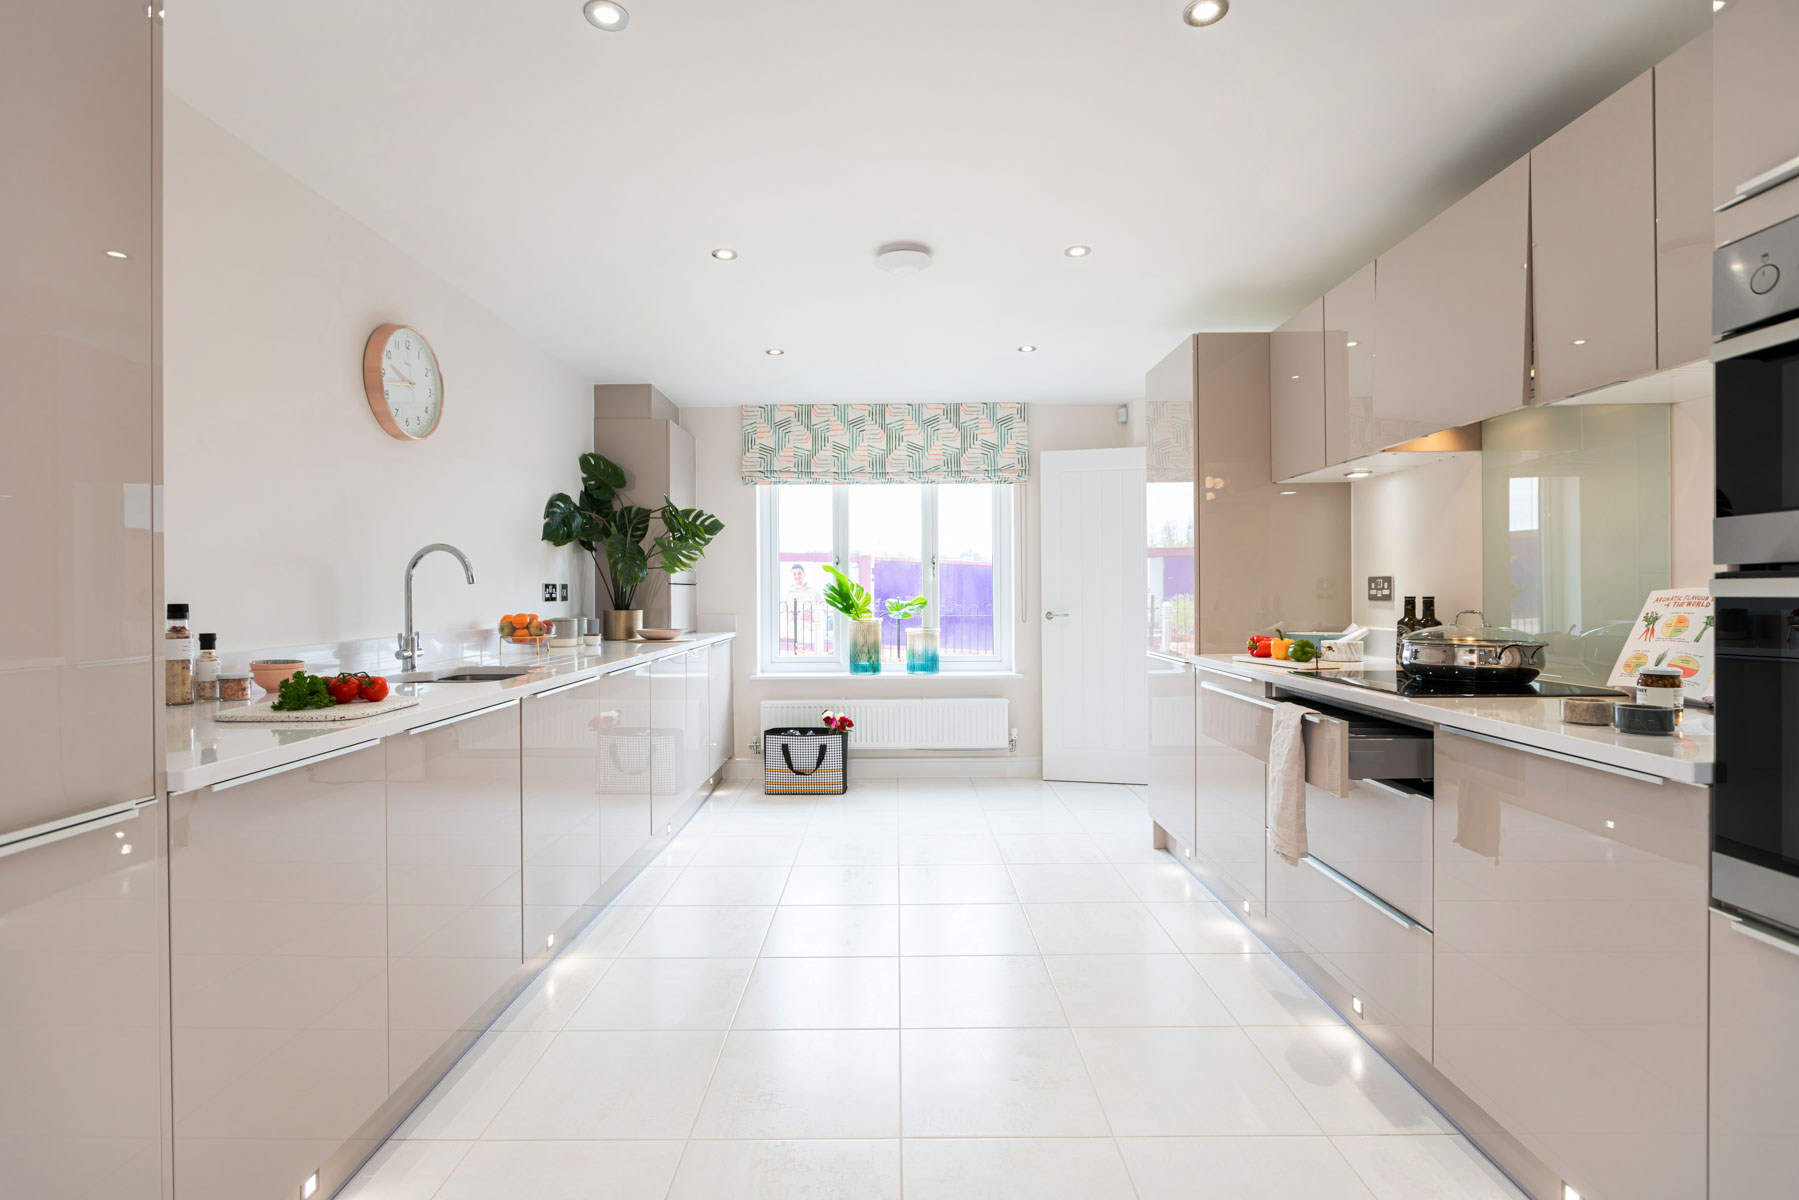 Taylor Wimpey - Mayfield Gardens - Marford kitchen